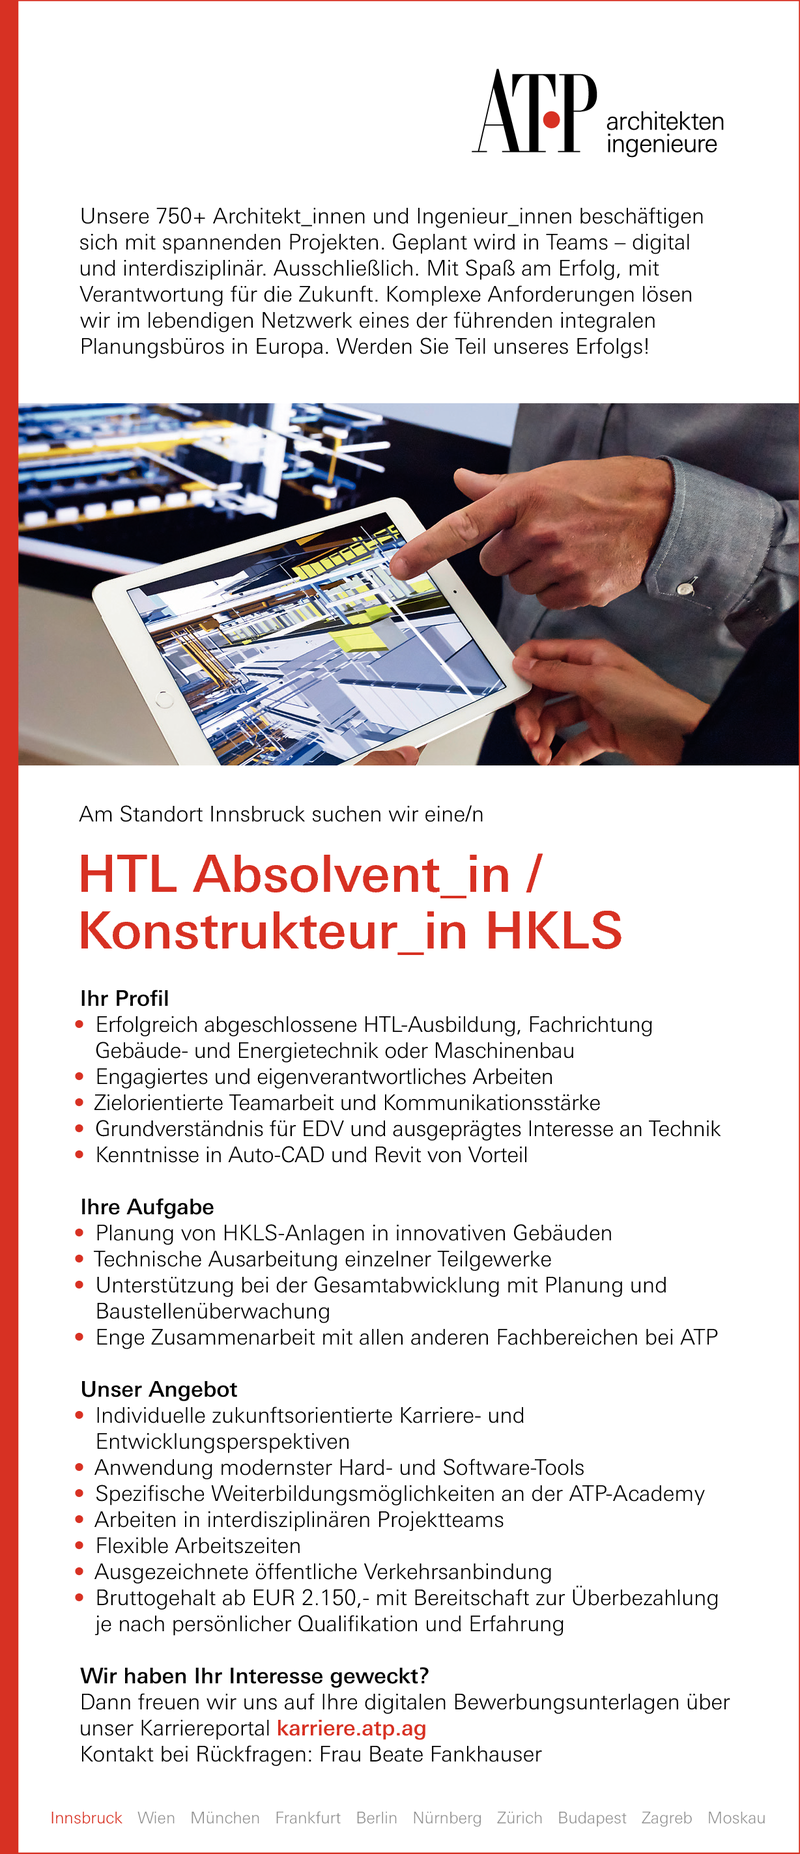 HTL Absolvent_in / Konstrukteur_in HKLS